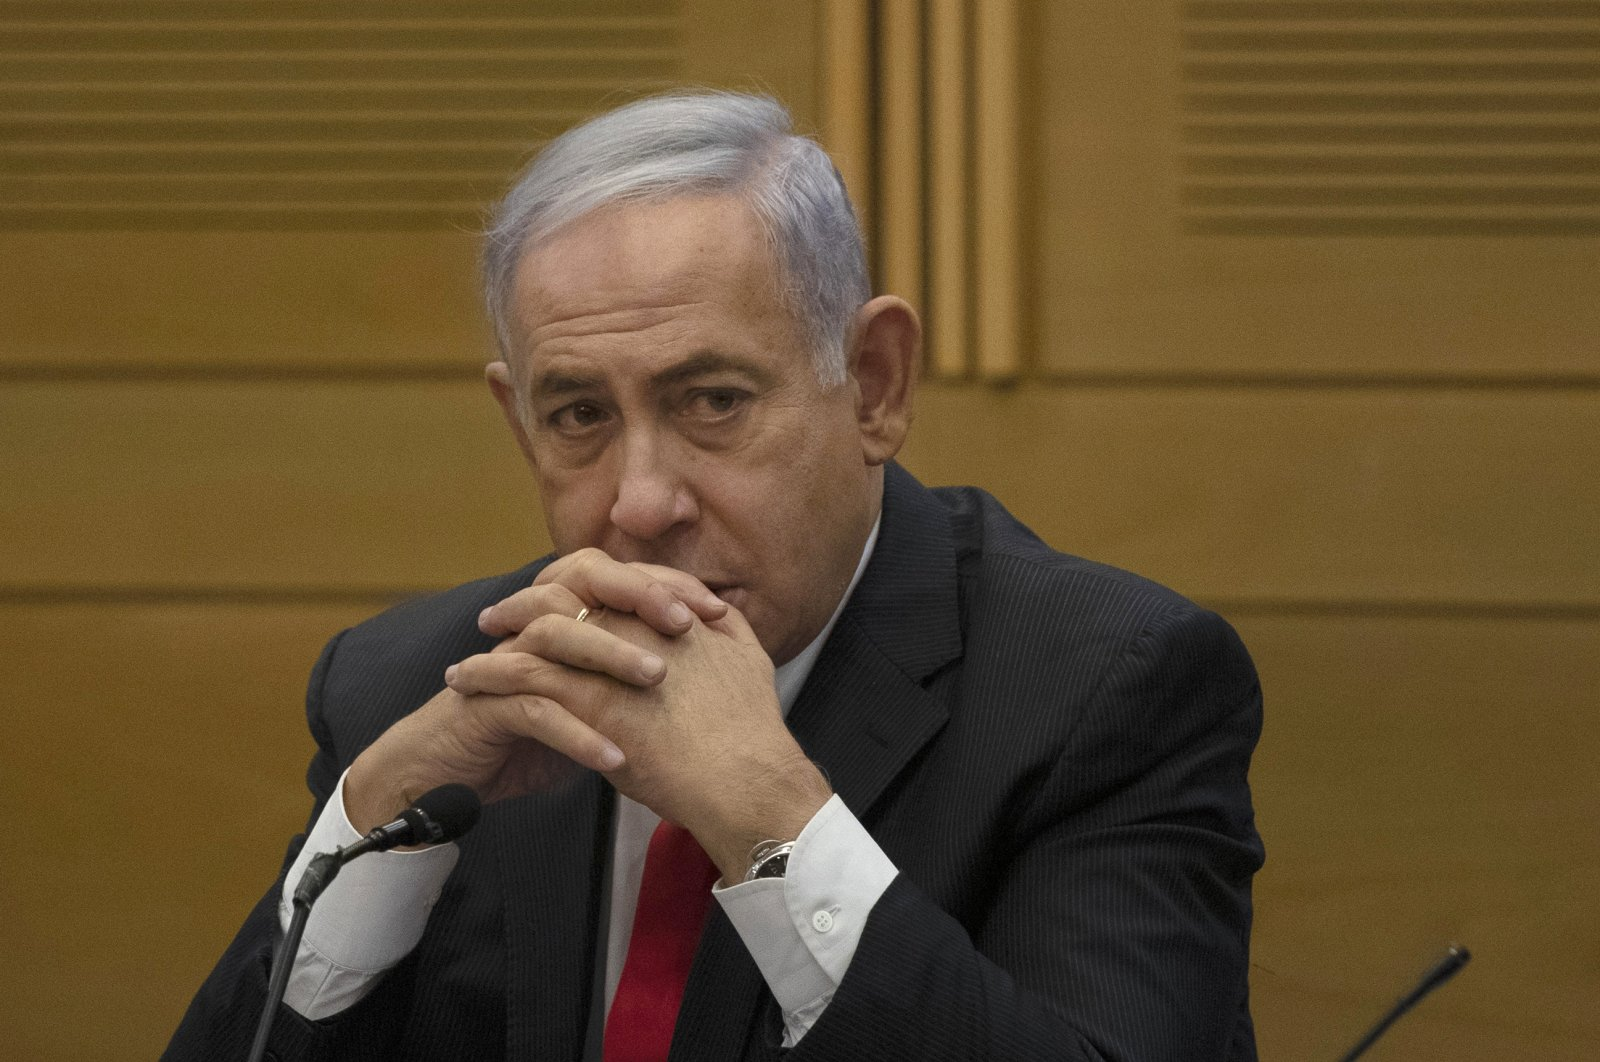 Former Israeli Prime Minister Benjamin Netanyahu speaks to right-wing opposition party members, at the Knesset, Israel's parliament, in Jerusalem, June 14, 2021. (AP Photo)